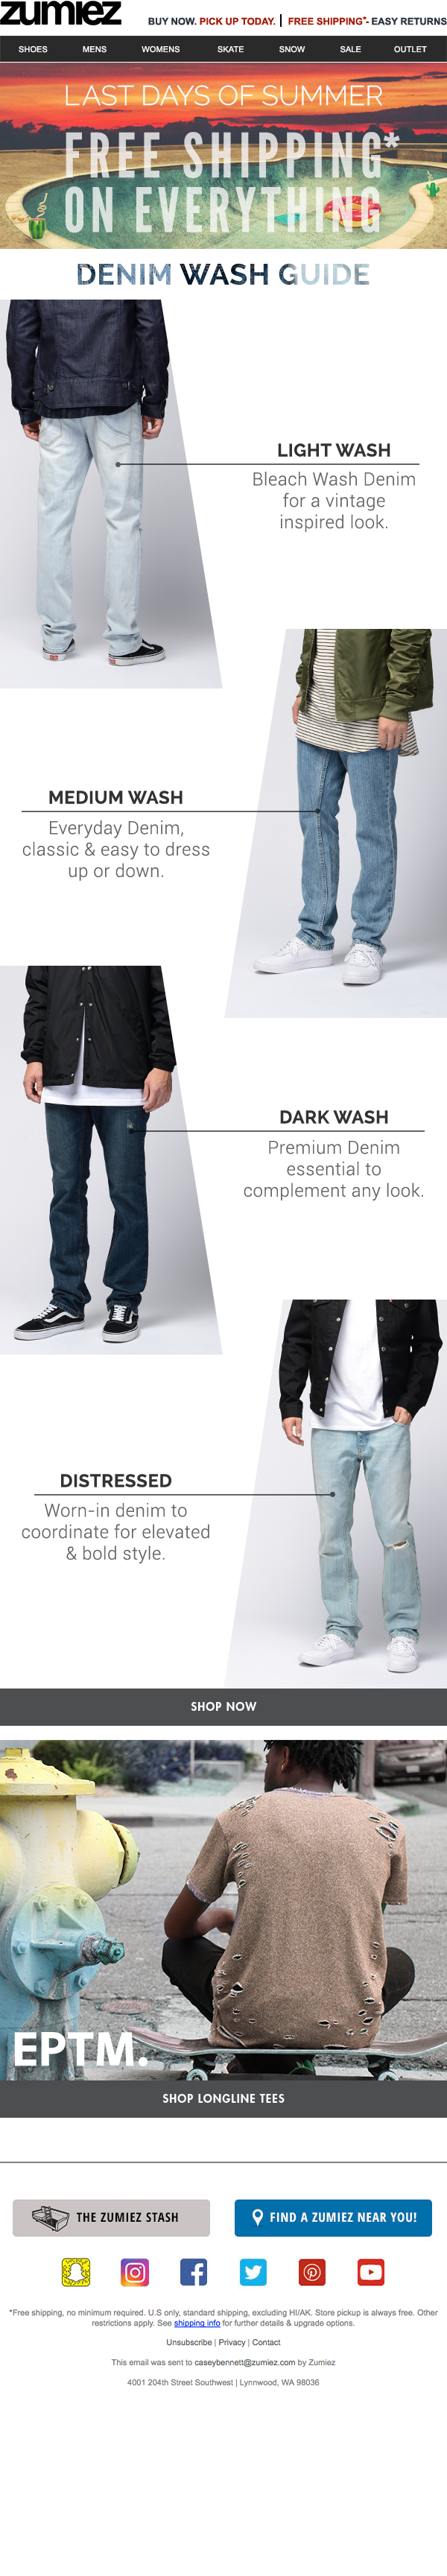 20160831-email-mens-washguide-eptm-03.png